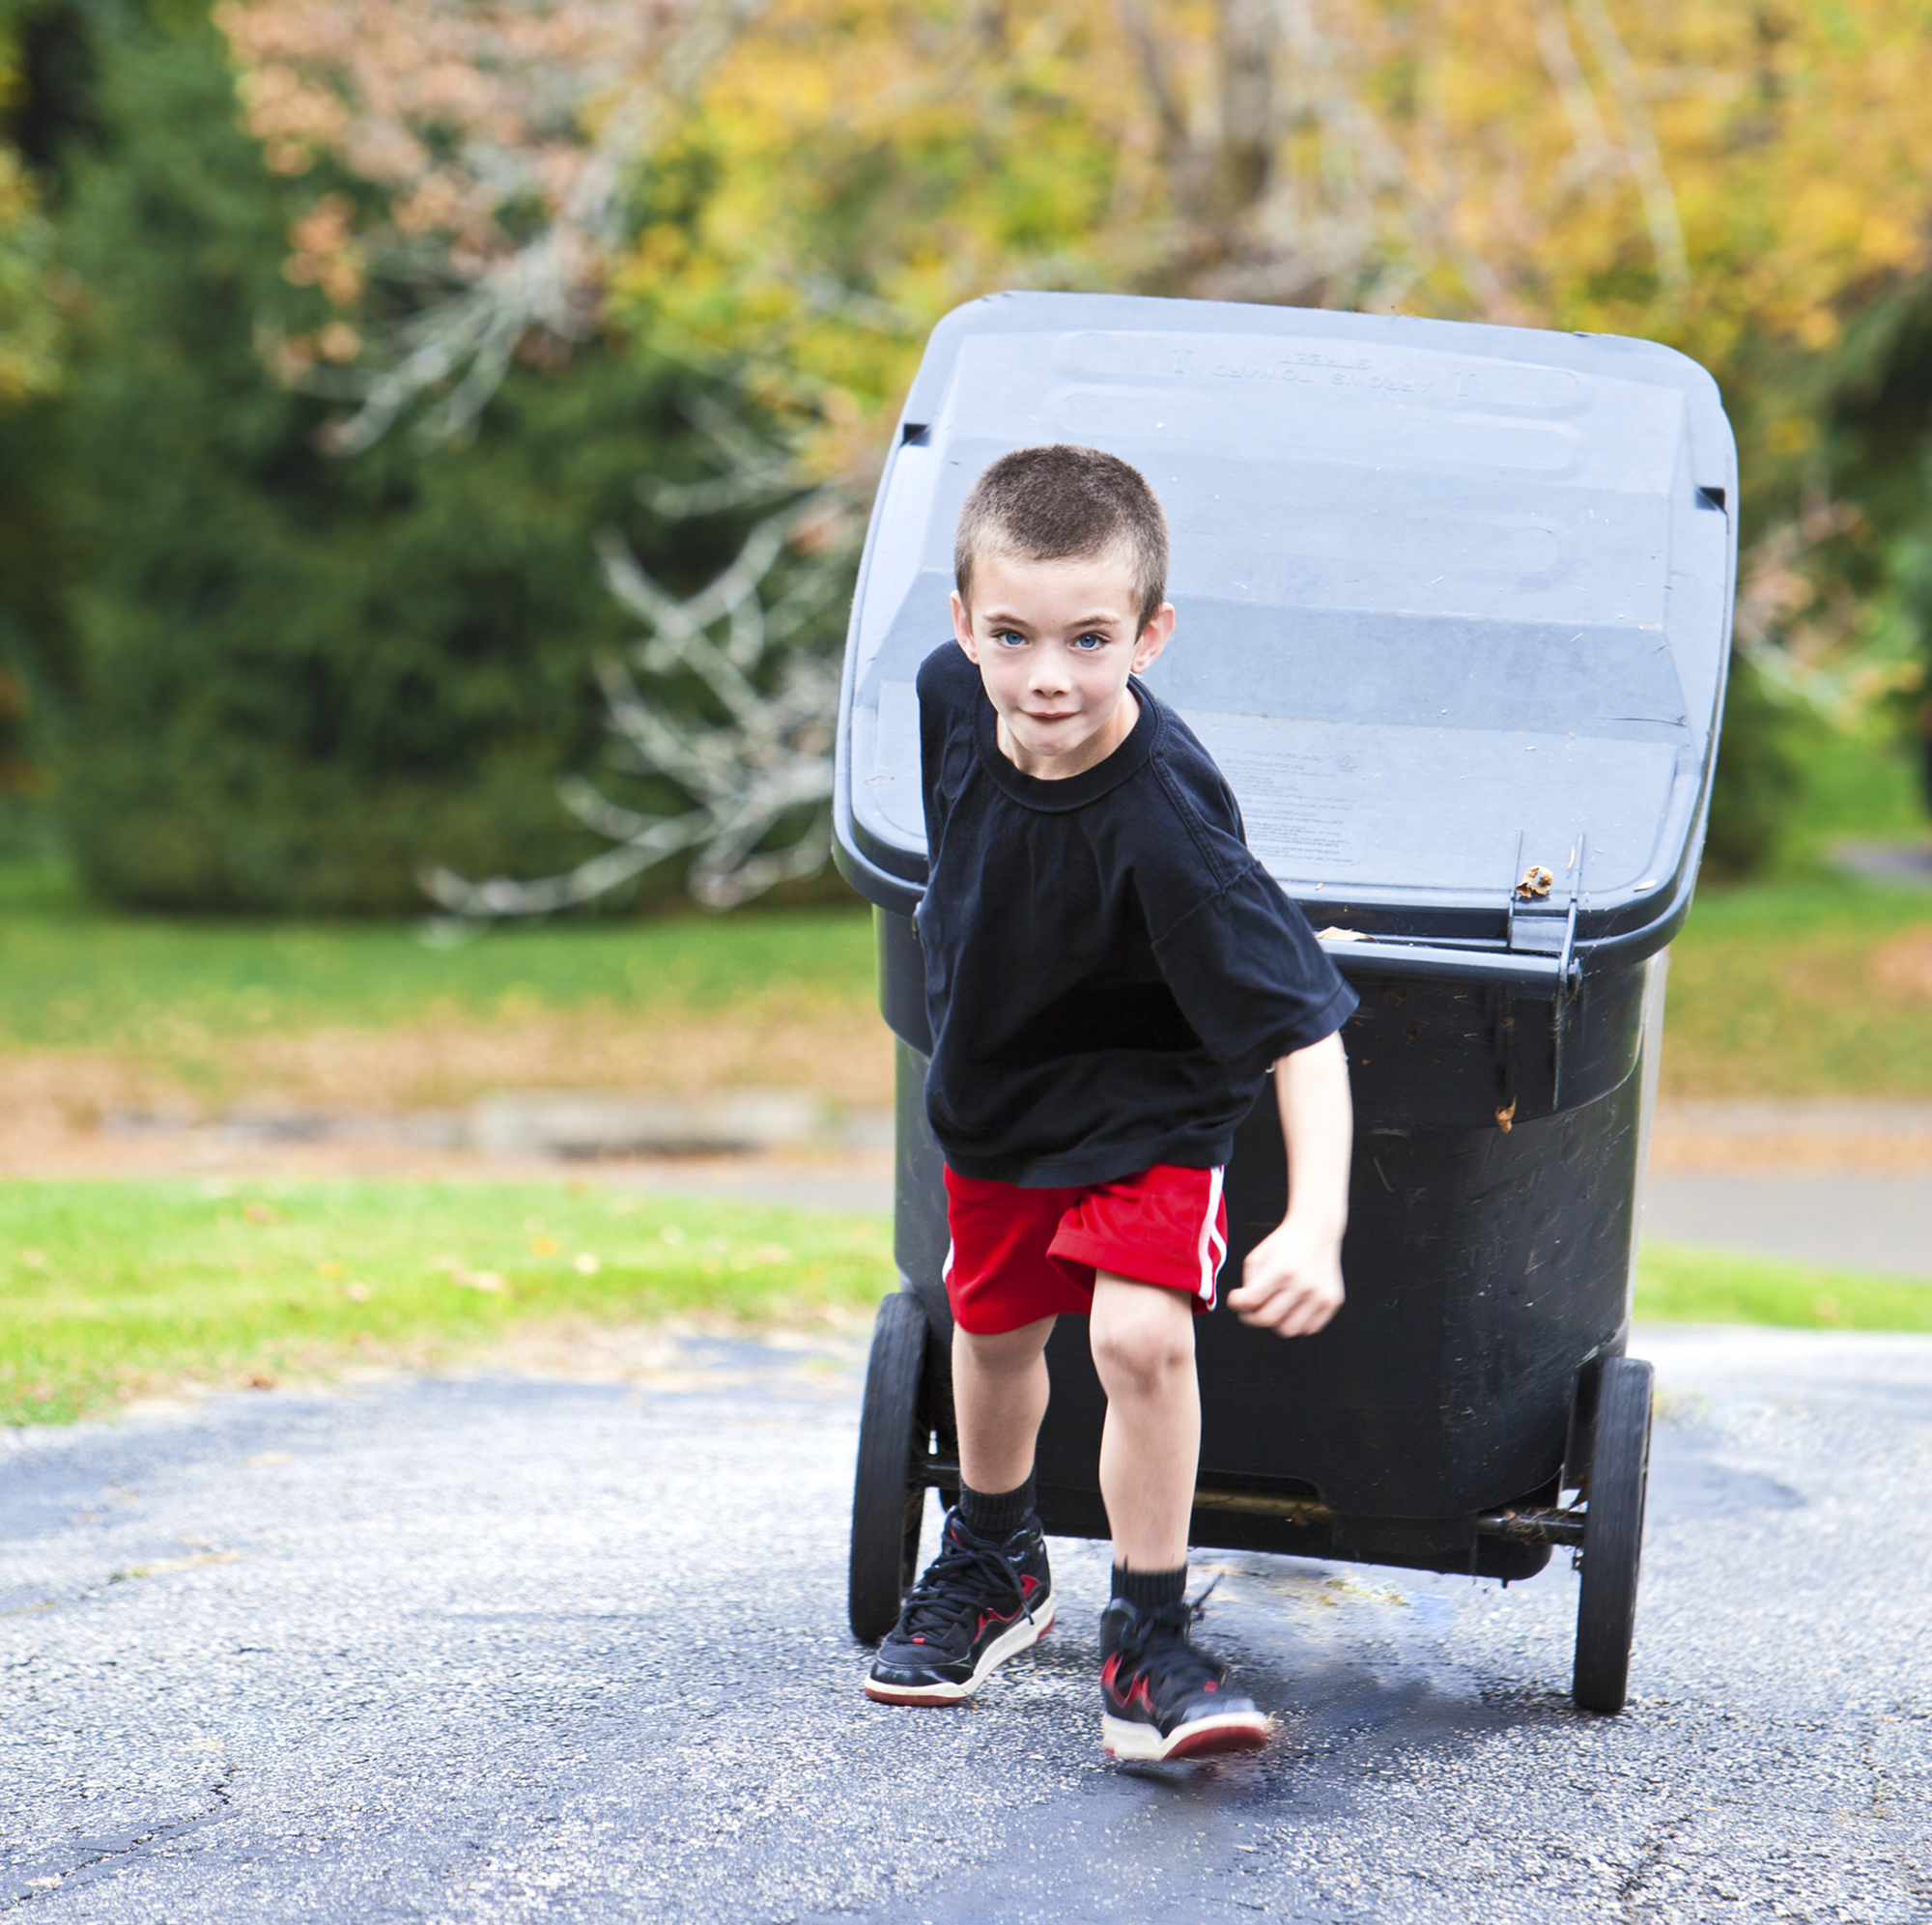 Assigning Age Appropriate Chores to Children